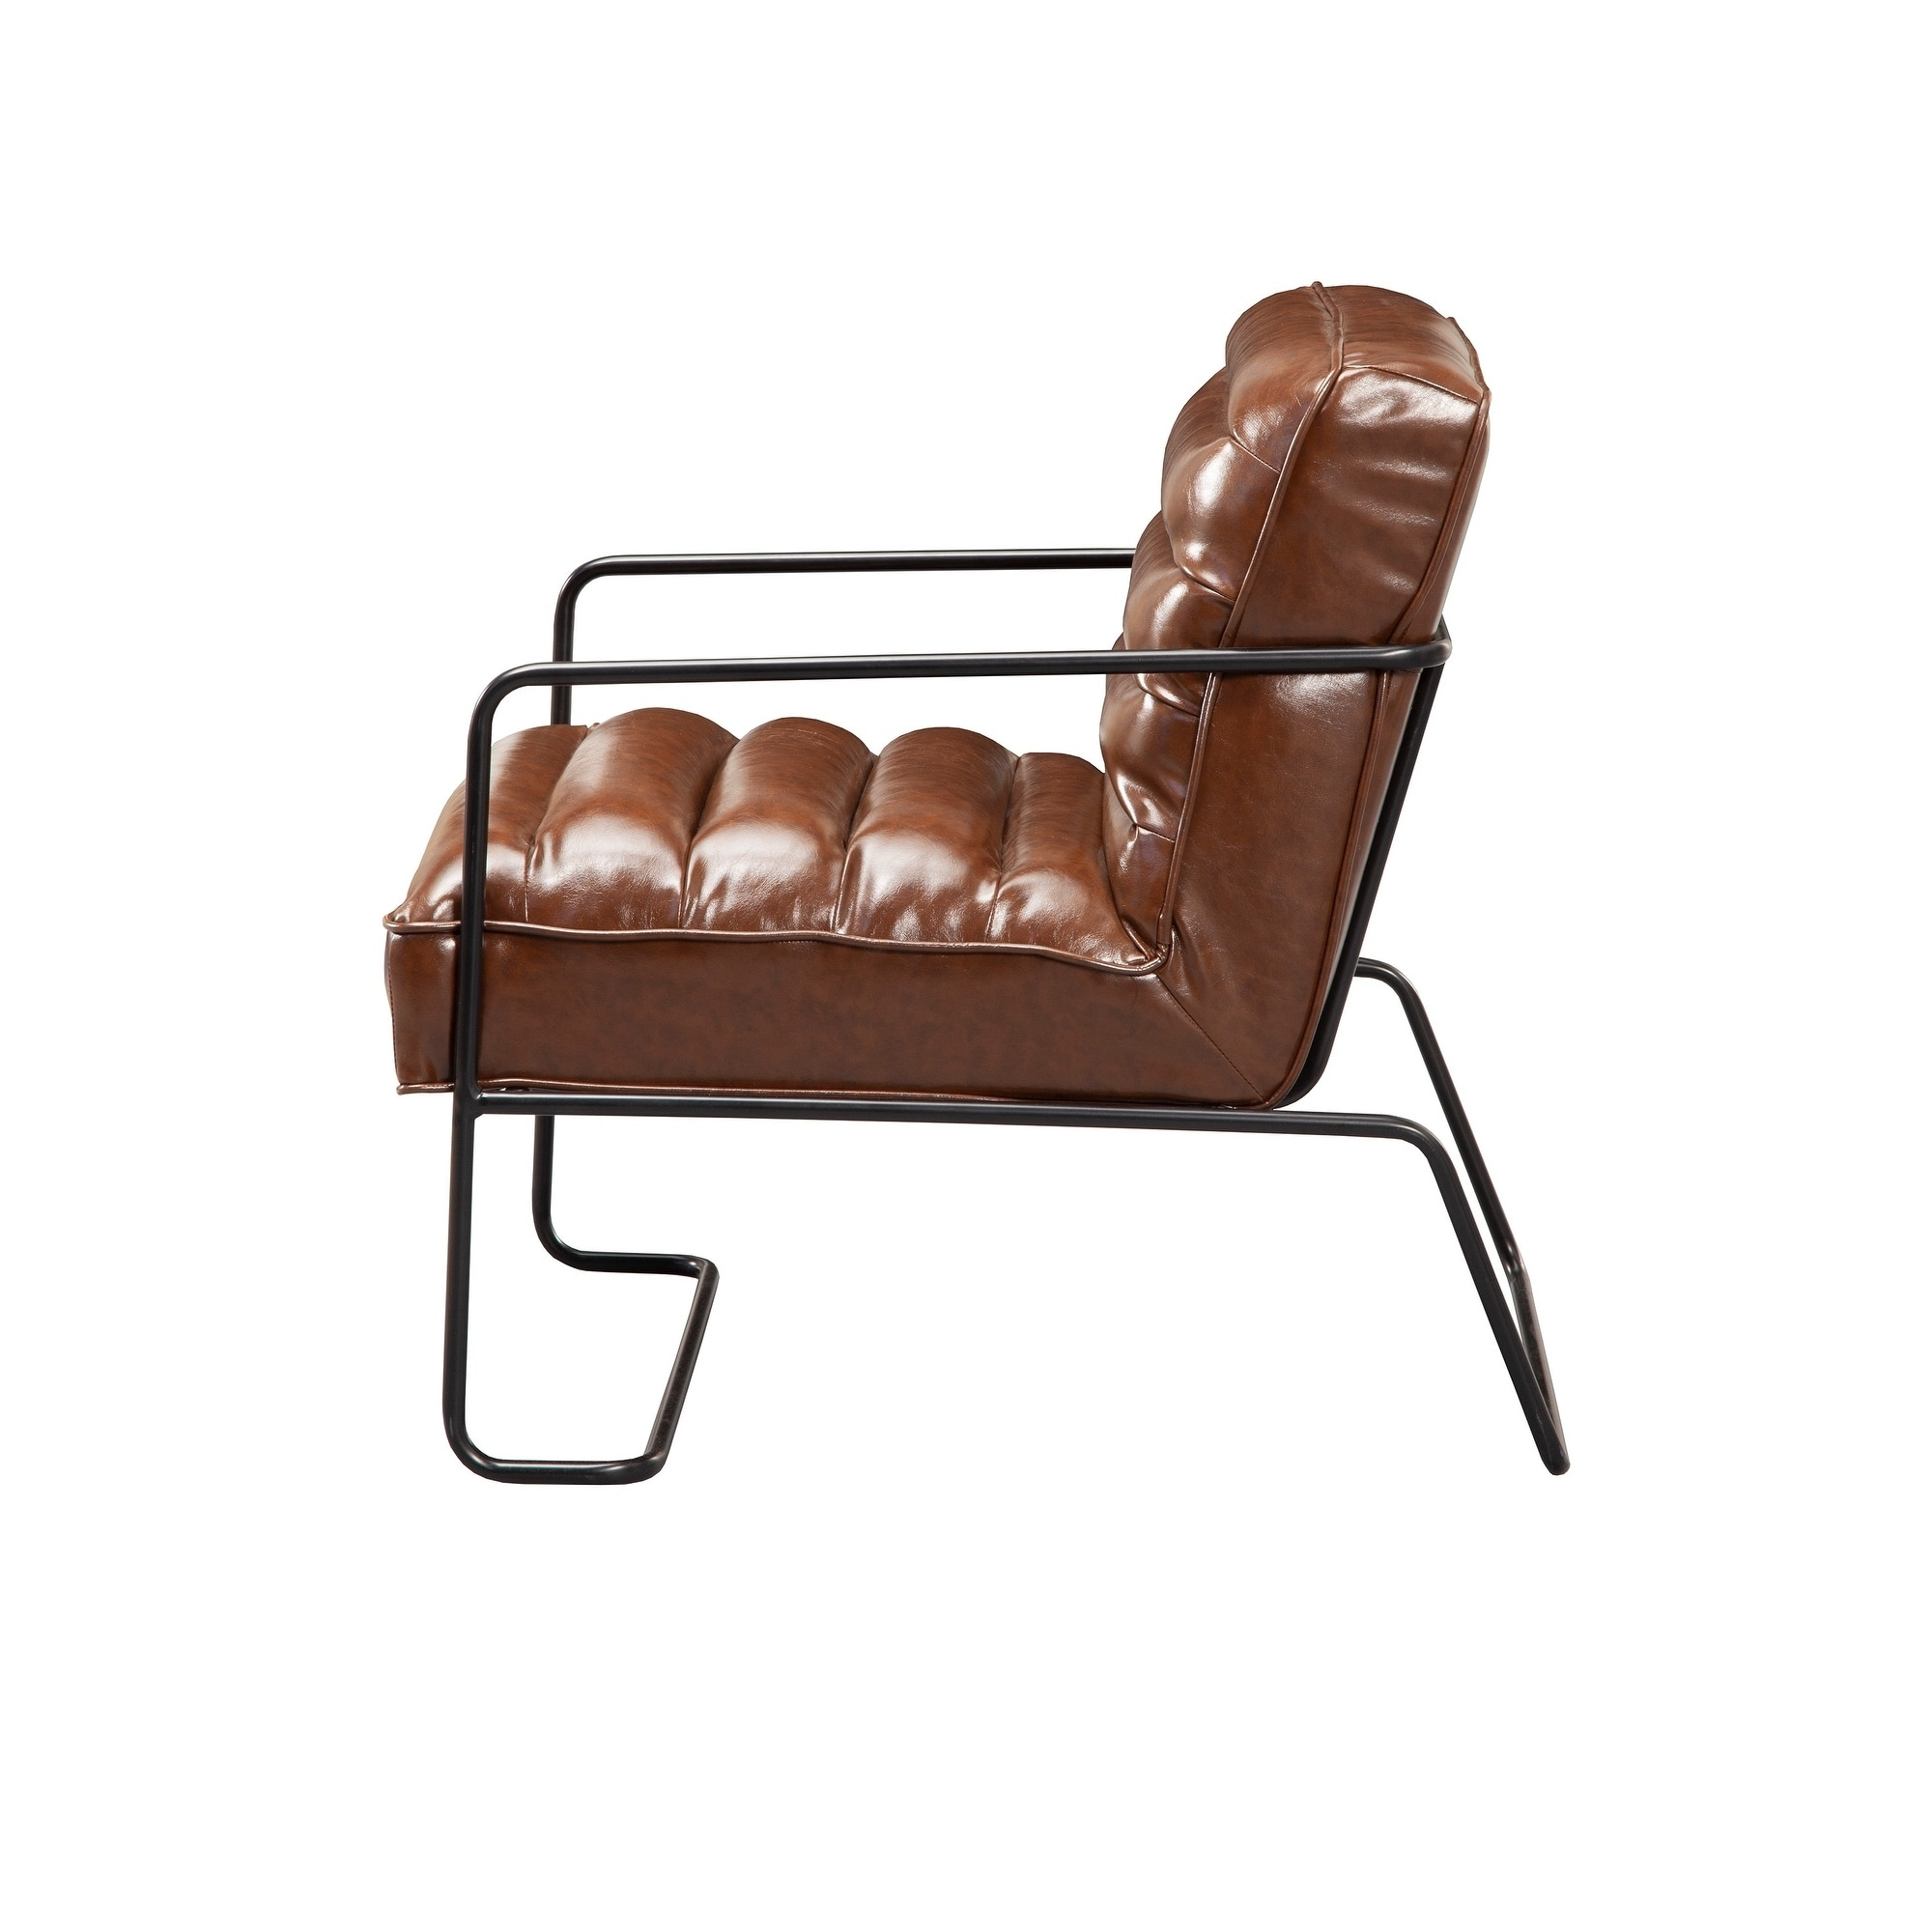 Cool Alpine Furniture Charles Brown Leather Accent Chair With Black Metal Frame Machost Co Dining Chair Design Ideas Machostcouk